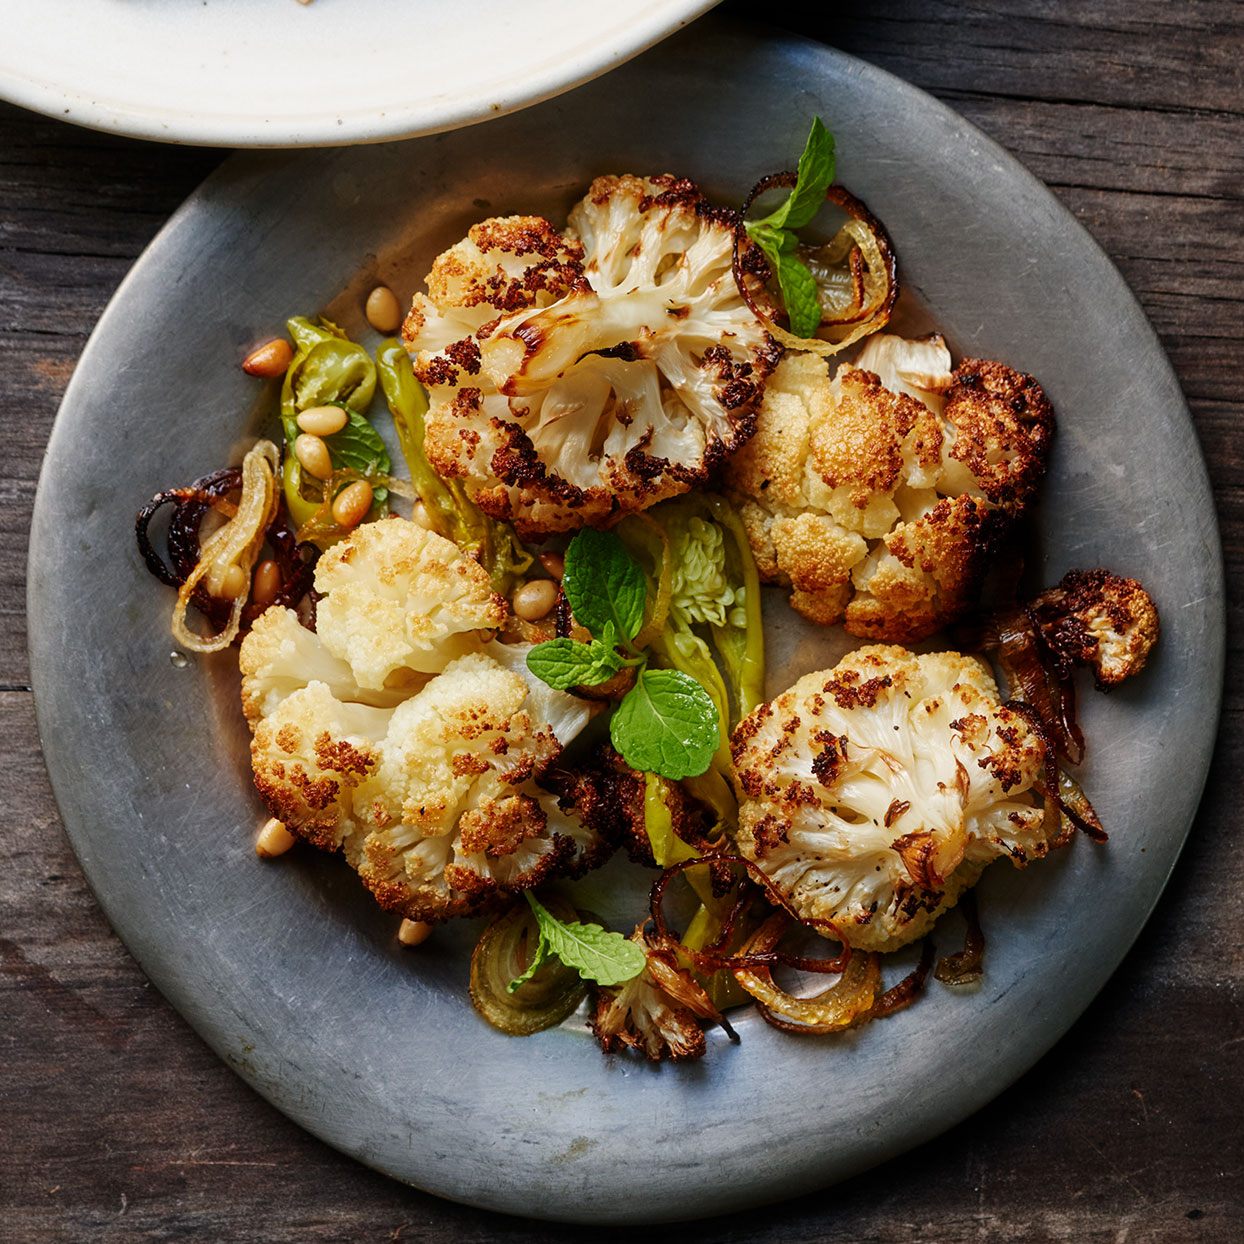 Don't be tempted to jam all the cauliflower onto one sheet pan in order to make fewer dirty dishes. Spreading it out on two pans ensures that it gets golden brown.